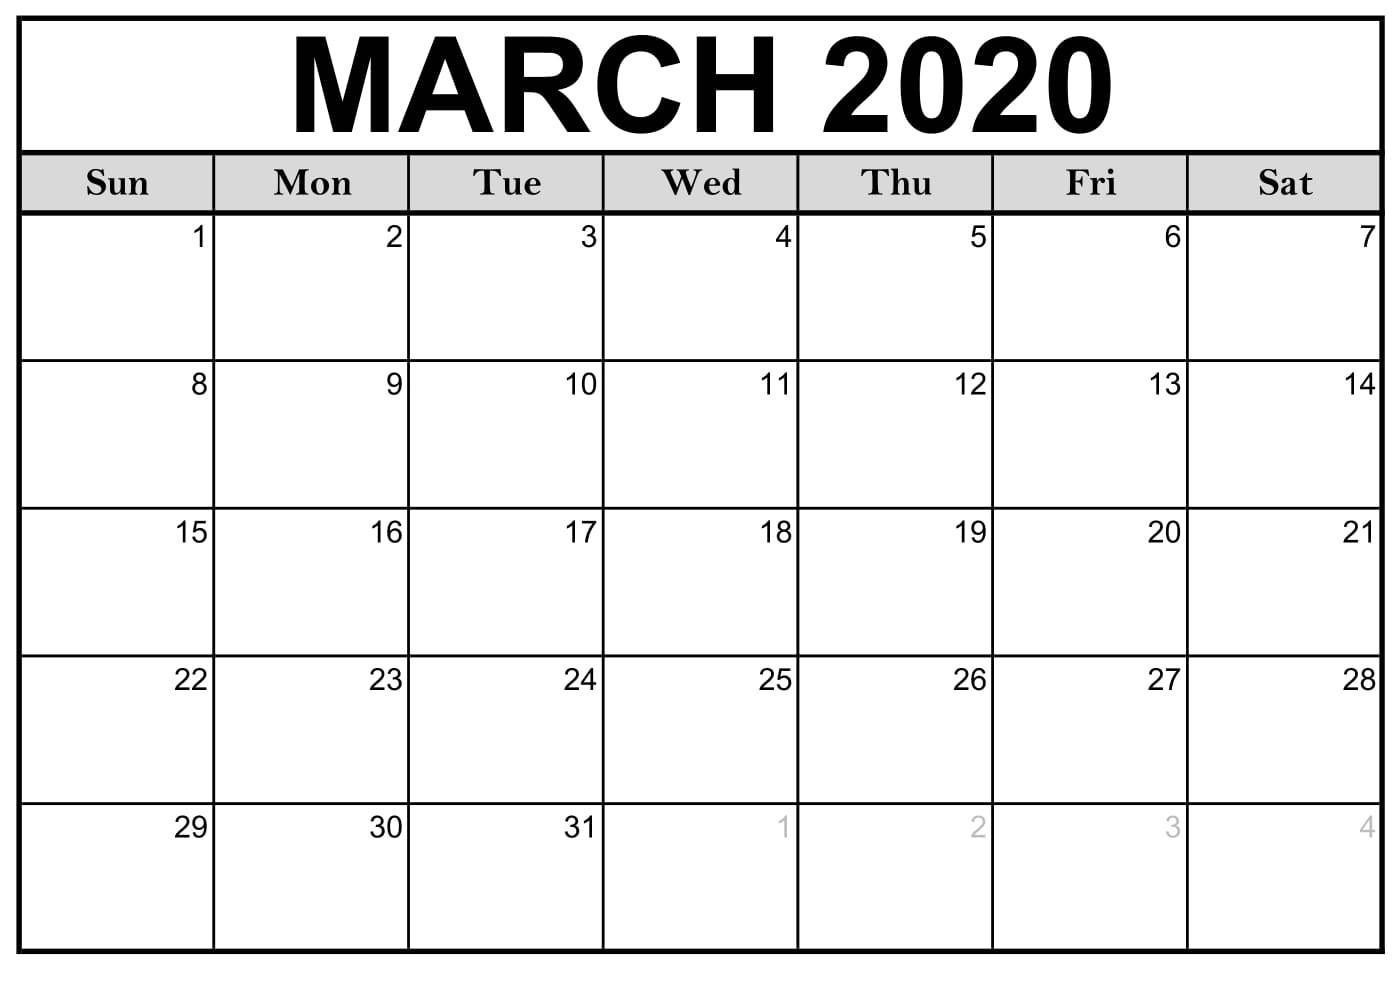 Fillable March 2020 Calendar Template Word, Pdf, Excel  Free Printable Editable Calendars 2020